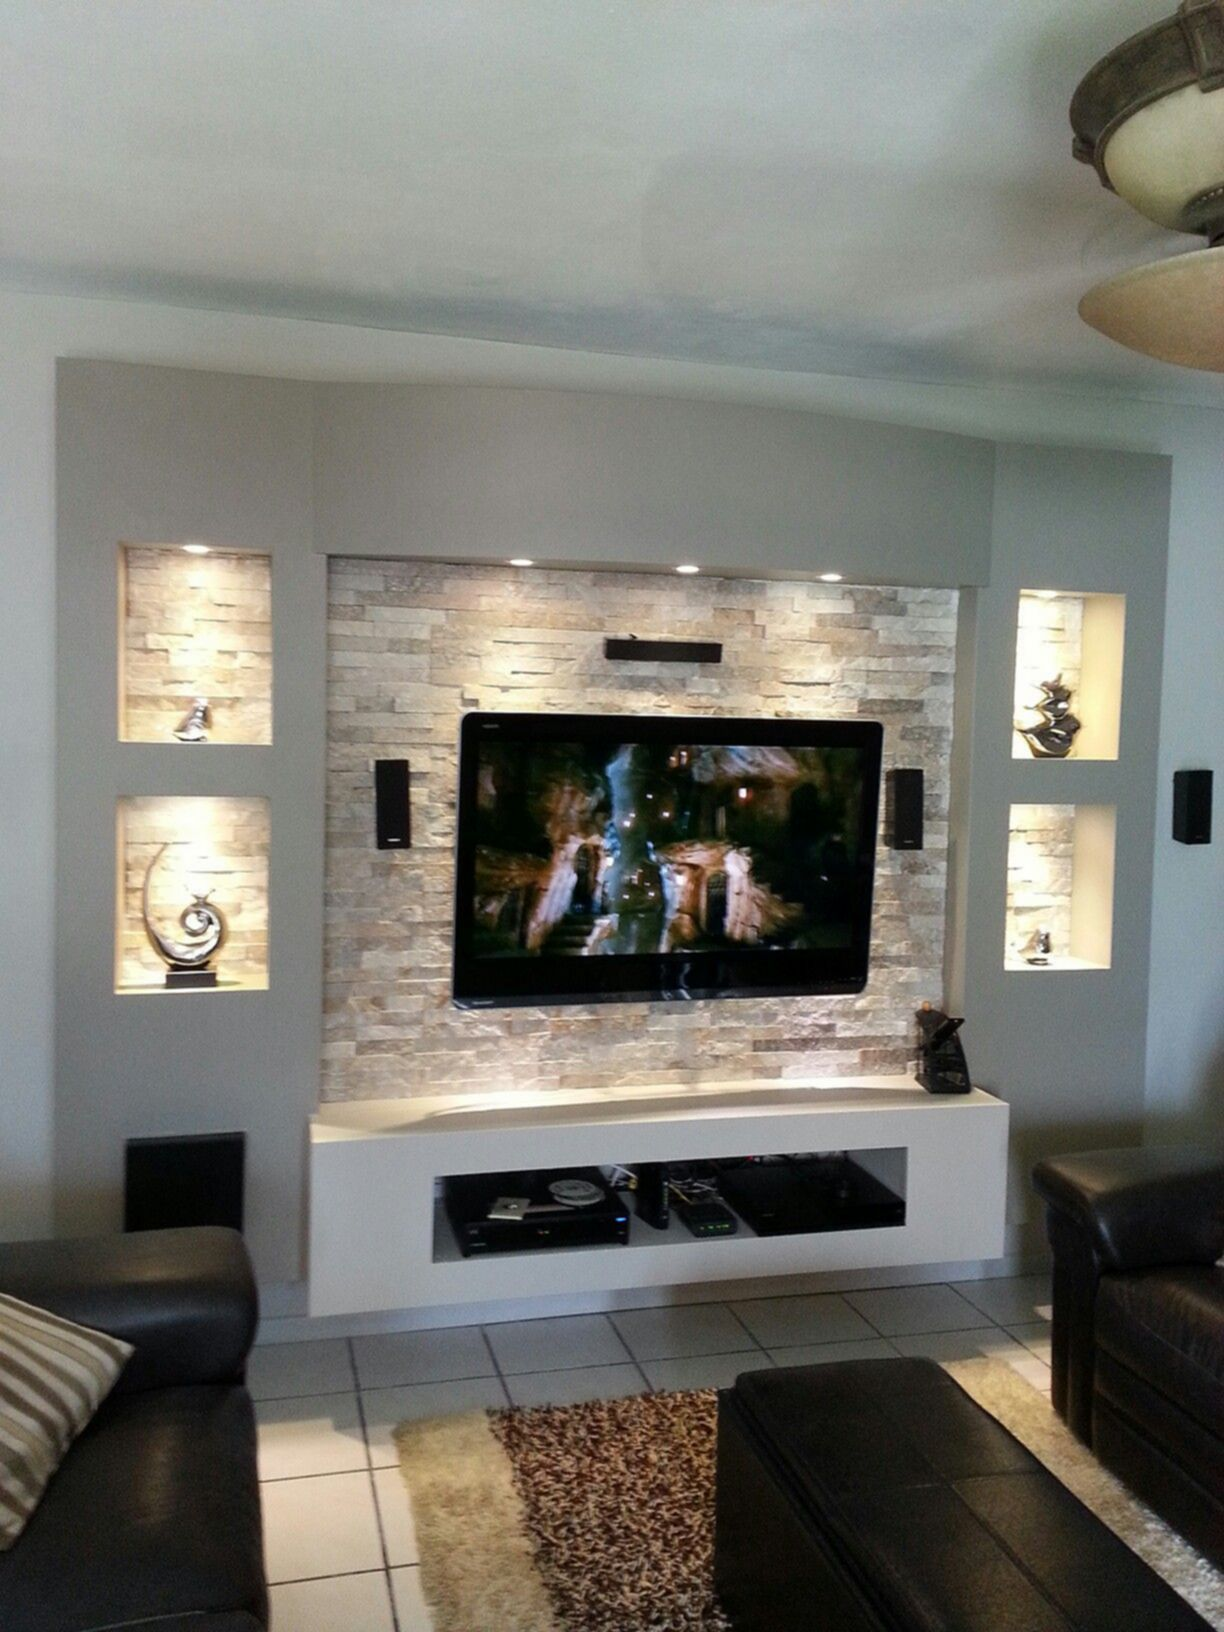 Top 10 Beautiful Living Room Design With Television Cheap Living